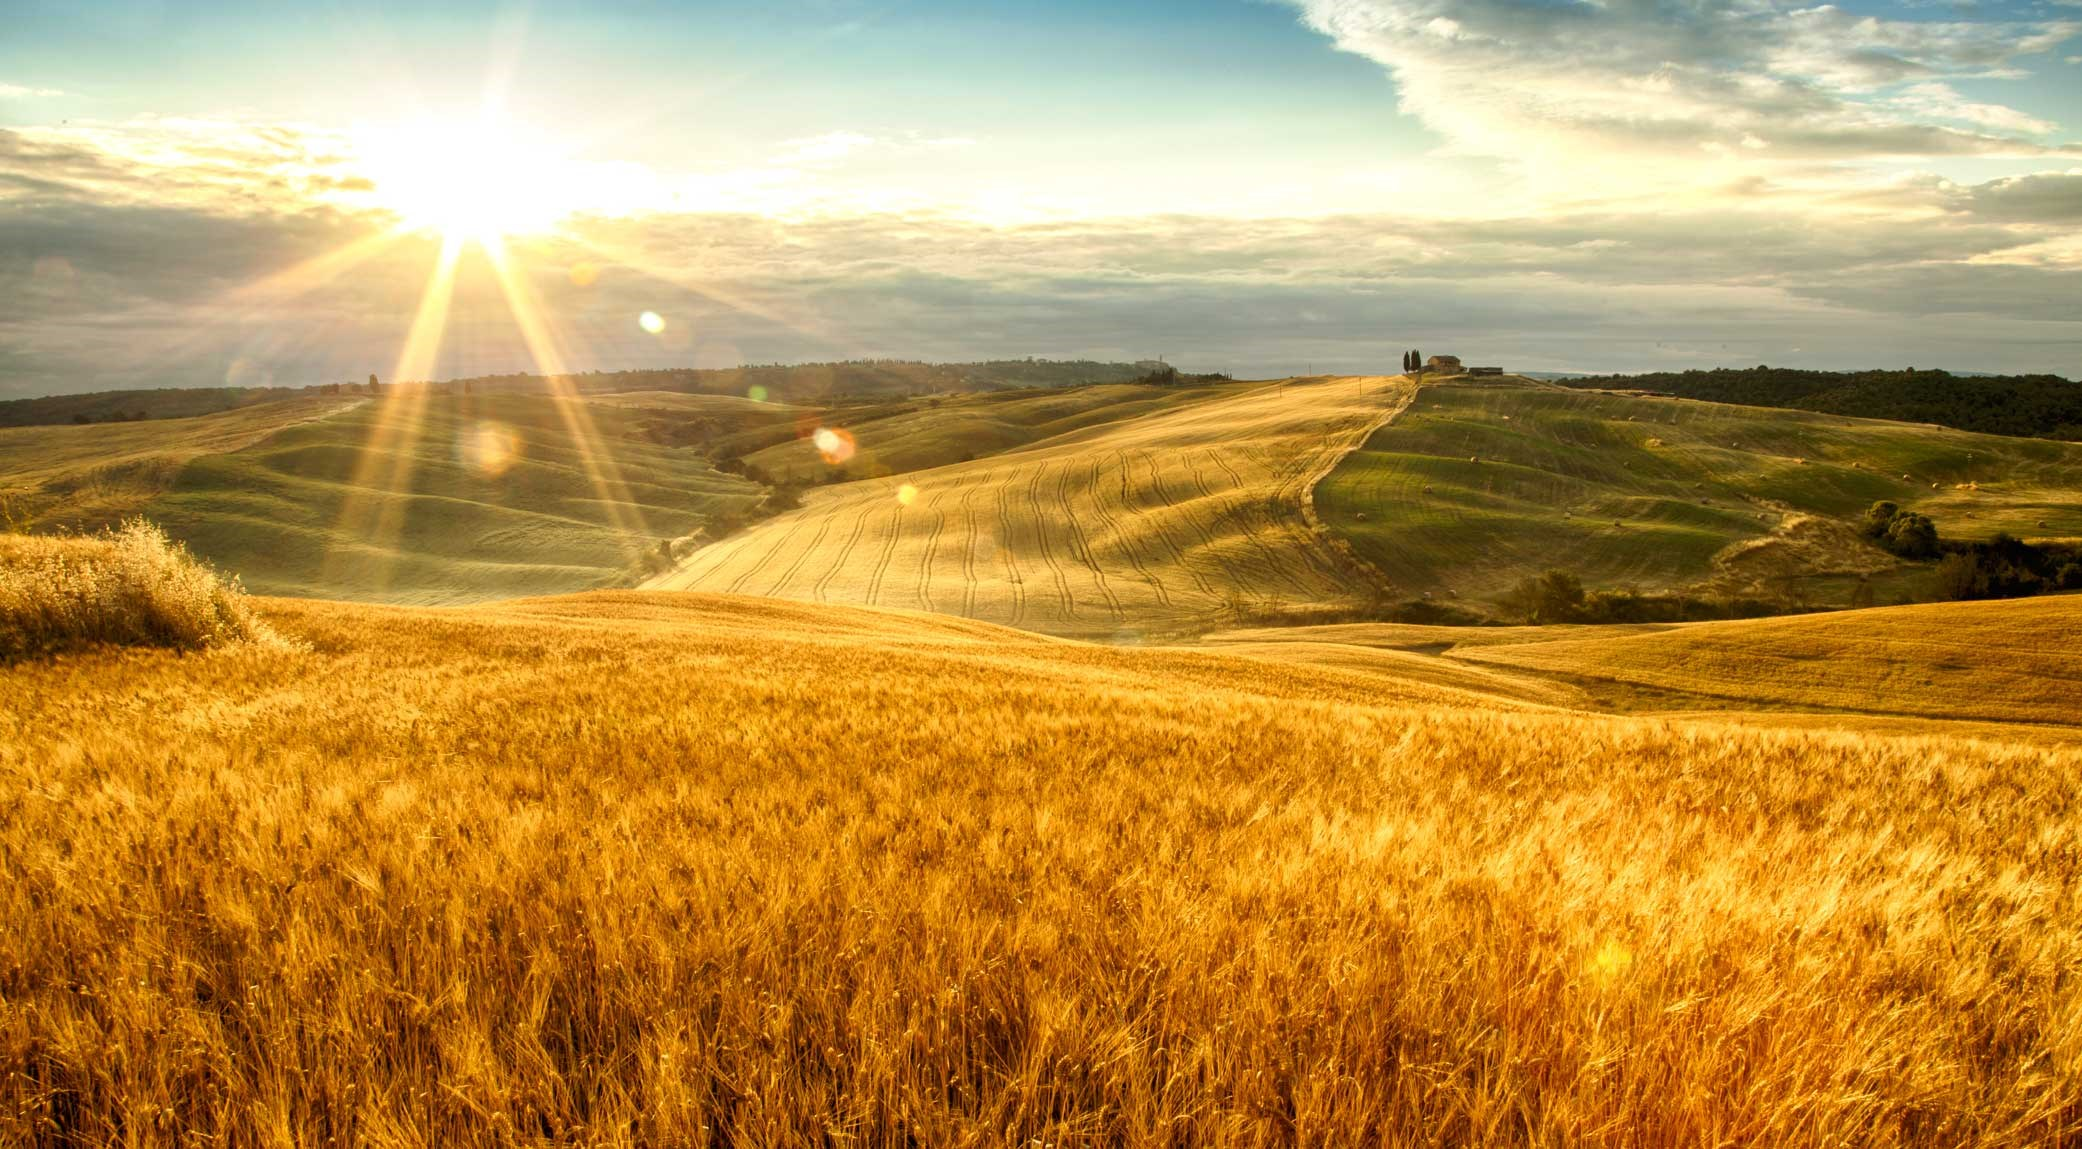 Tuscany travel guide for first-time visitors - Best Places to Visit in Europe - planningforeurope.com (2)